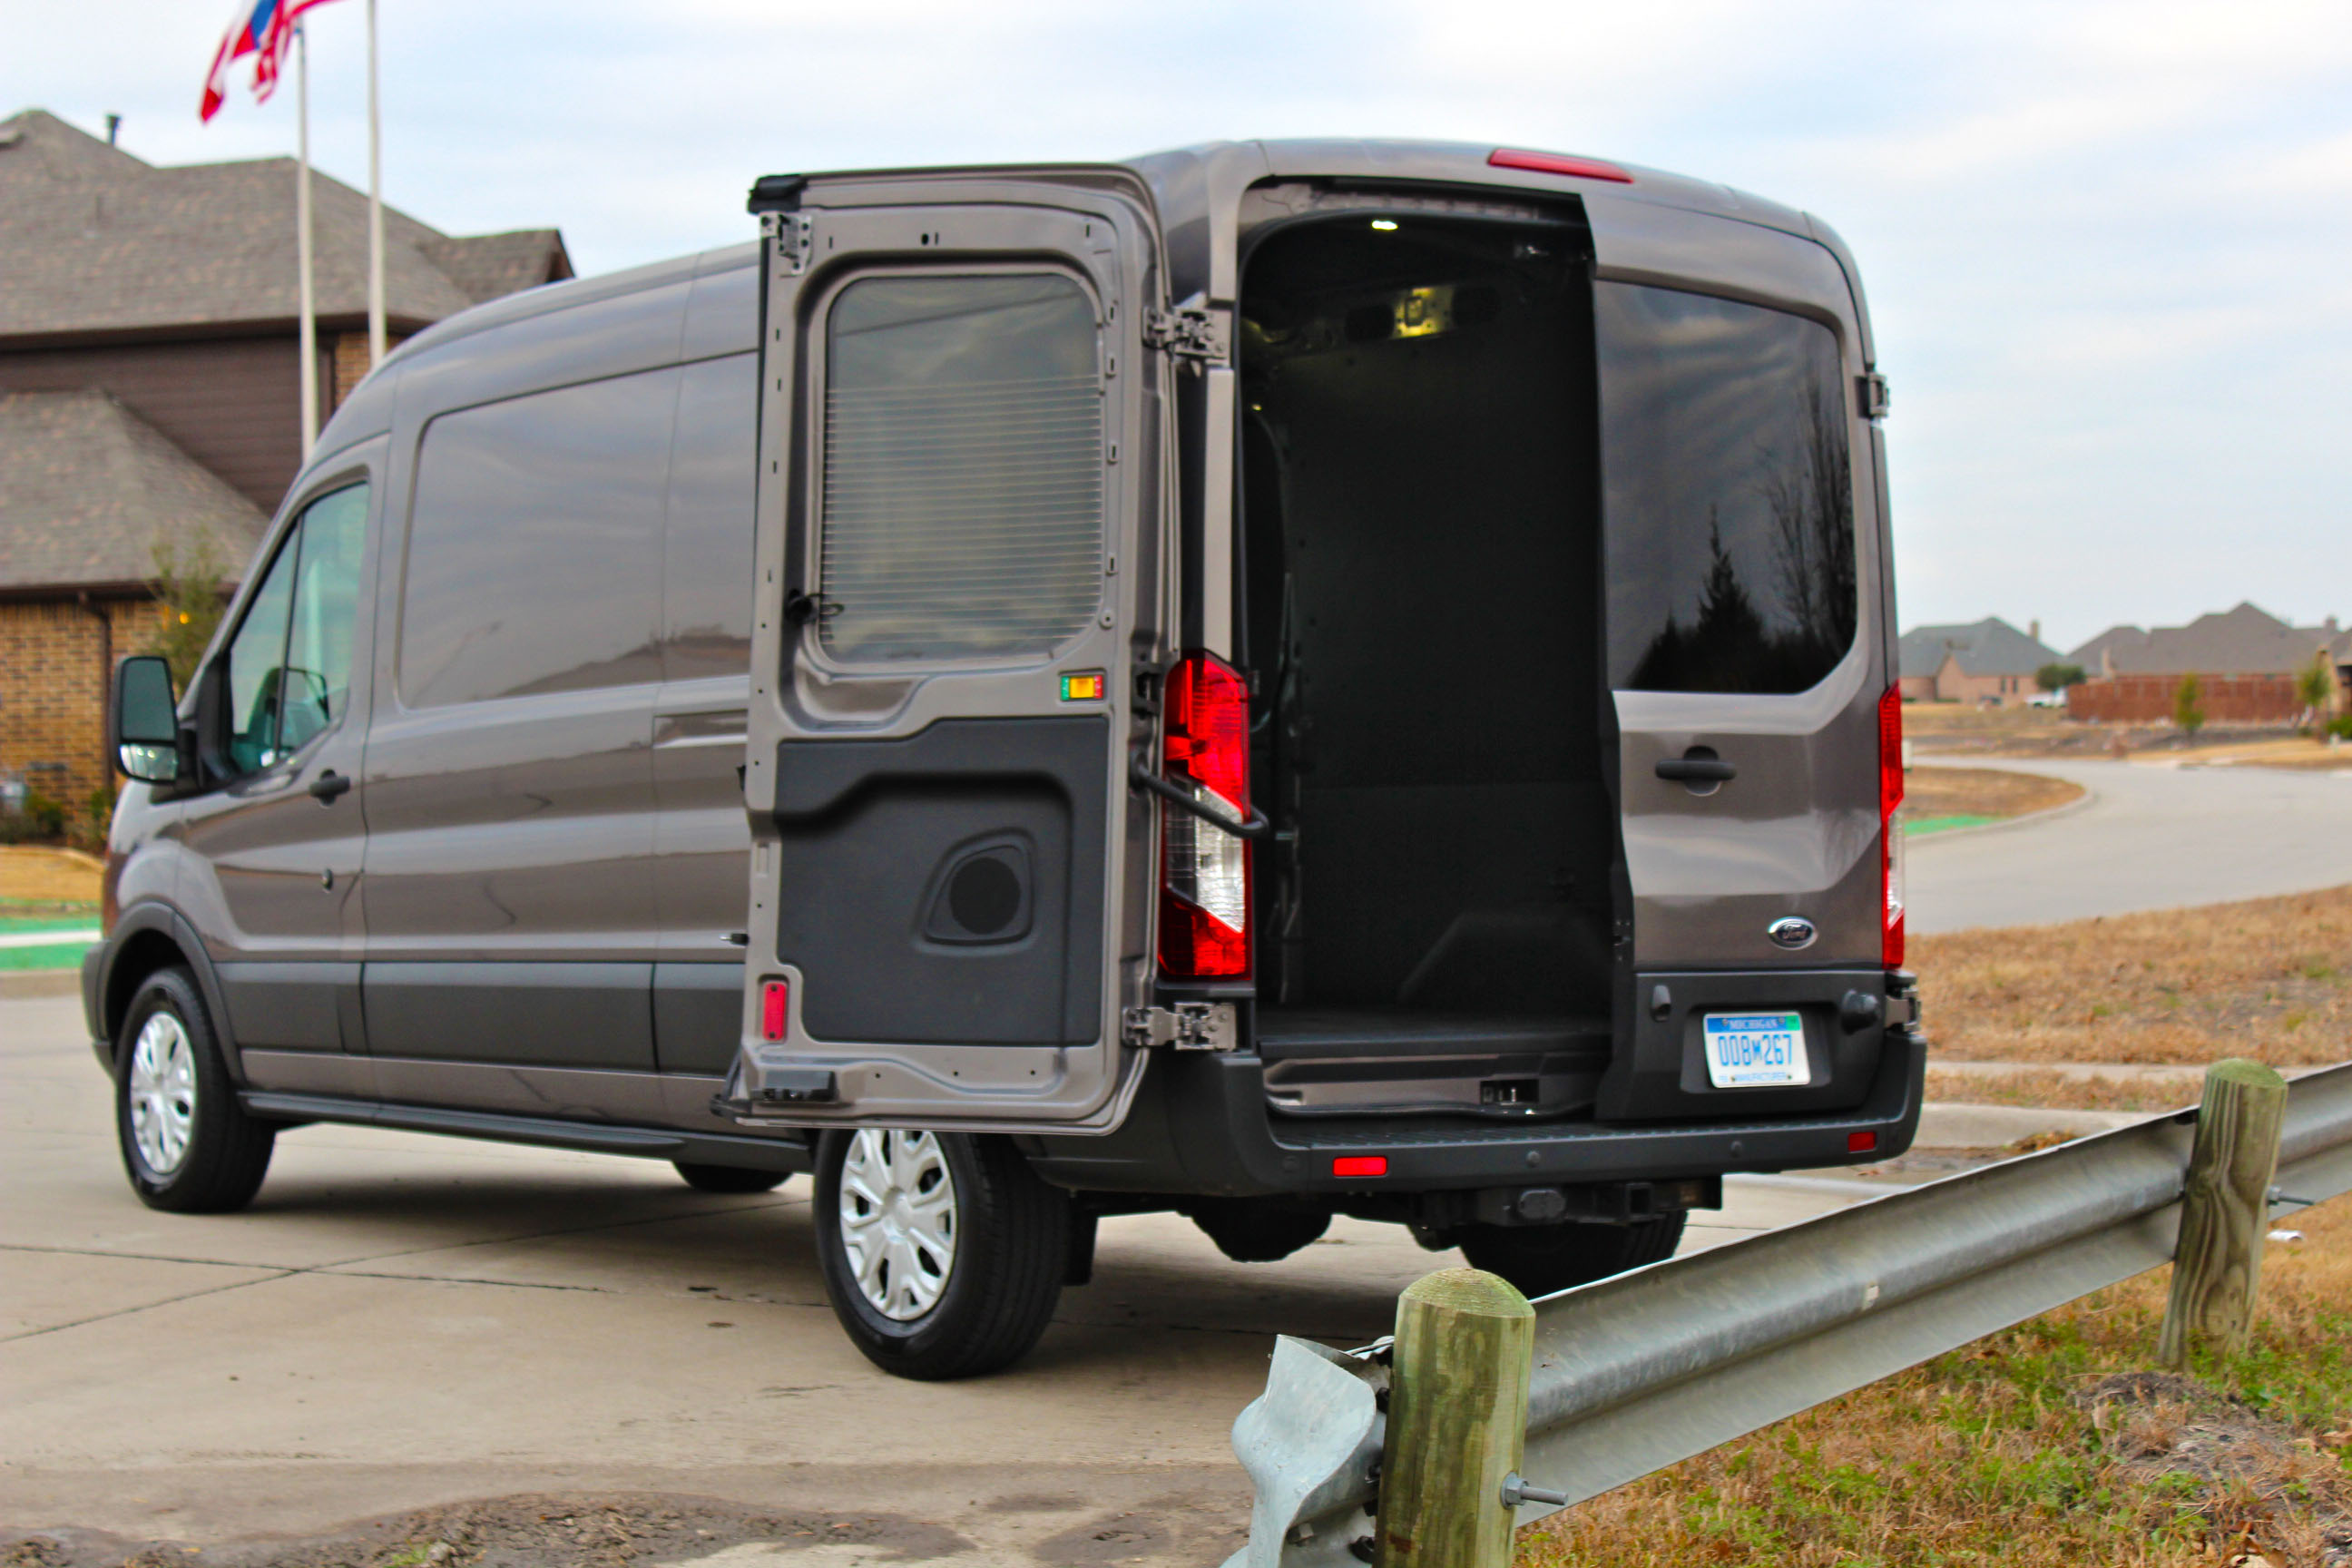 2015 ford transit commercial van 32 txgarage. Black Bedroom Furniture Sets. Home Design Ideas